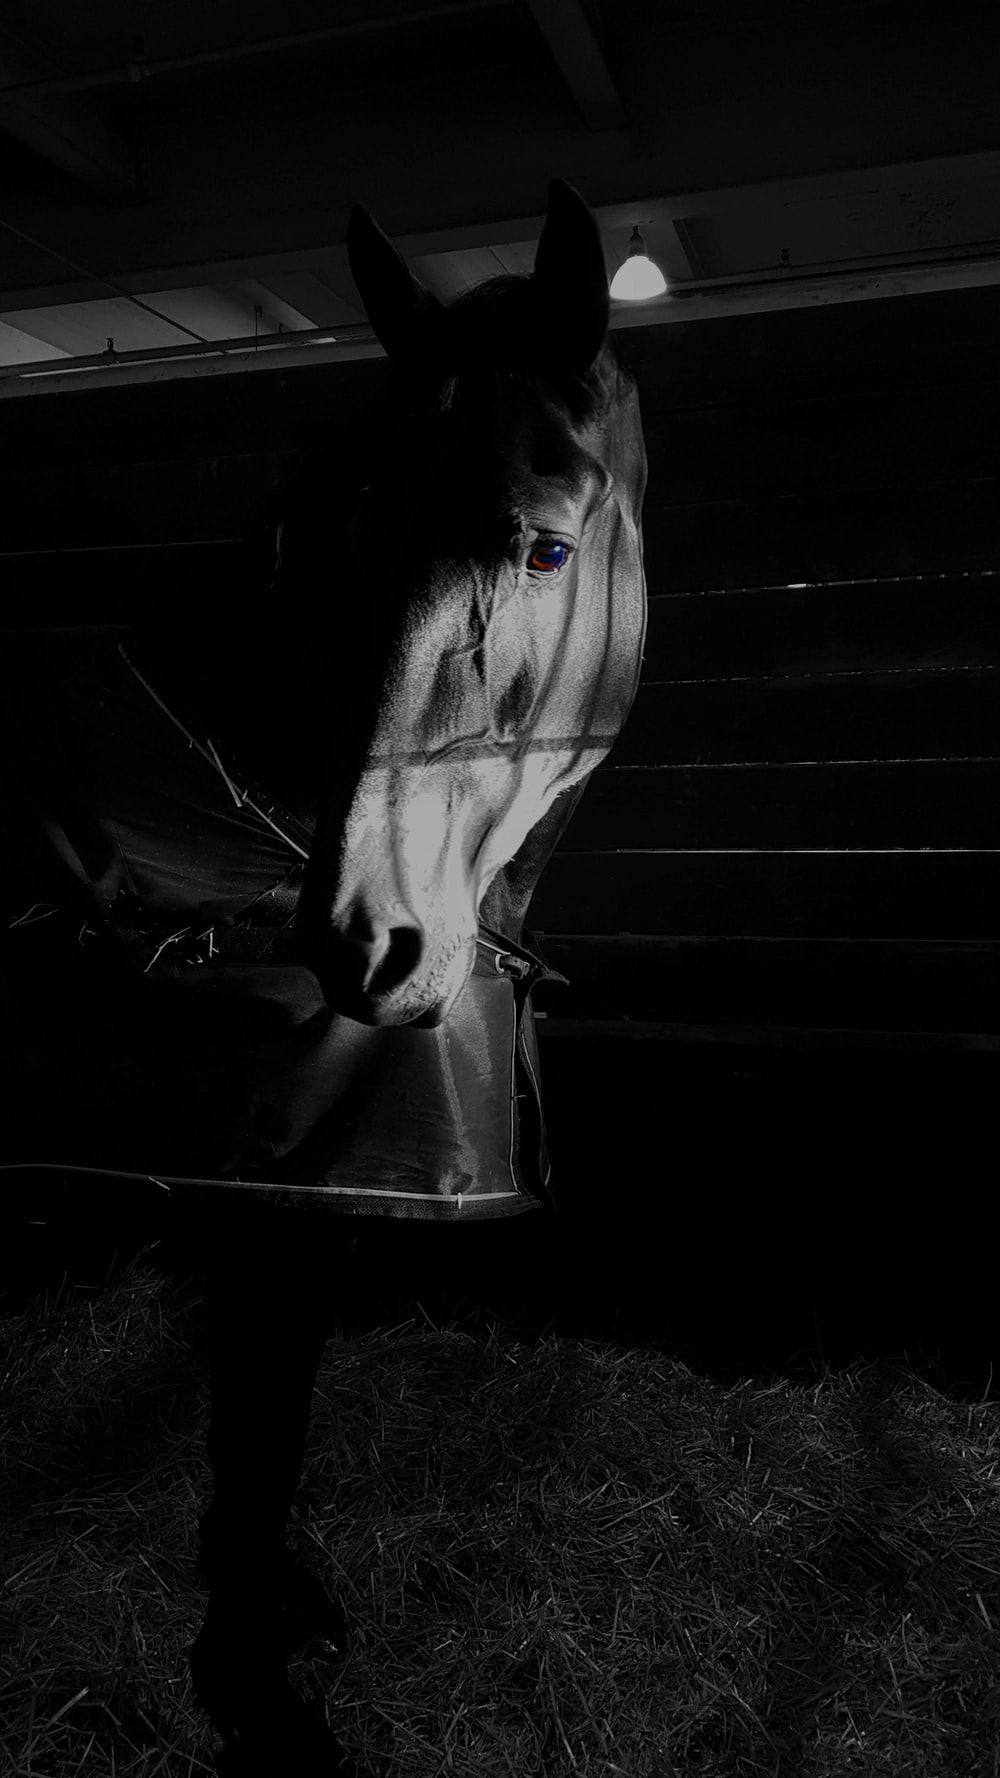 grayscale photography of horse inside barn